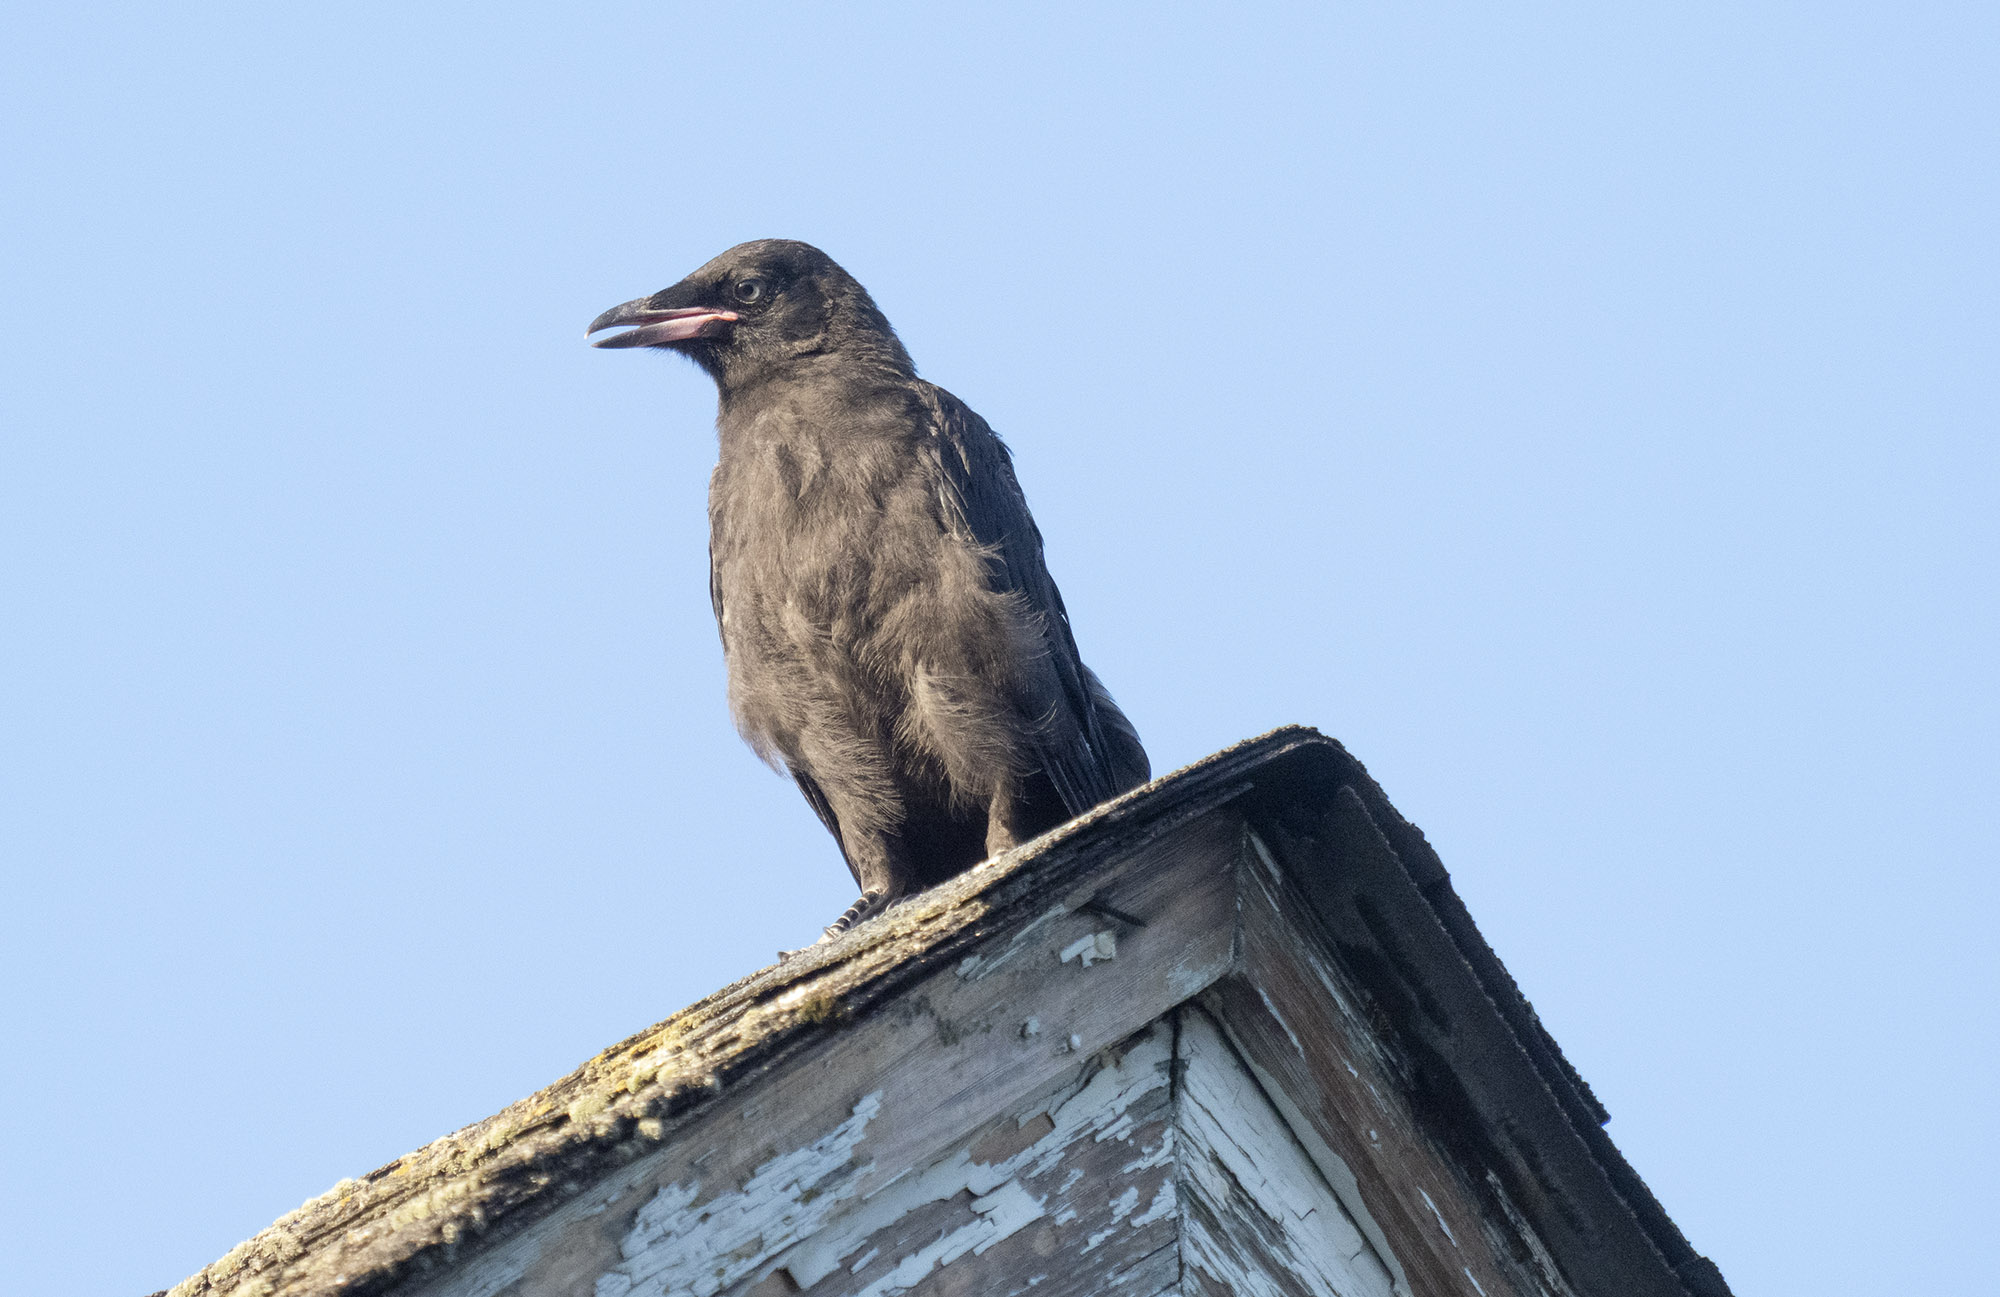 Fledgling crow on a peeling roof